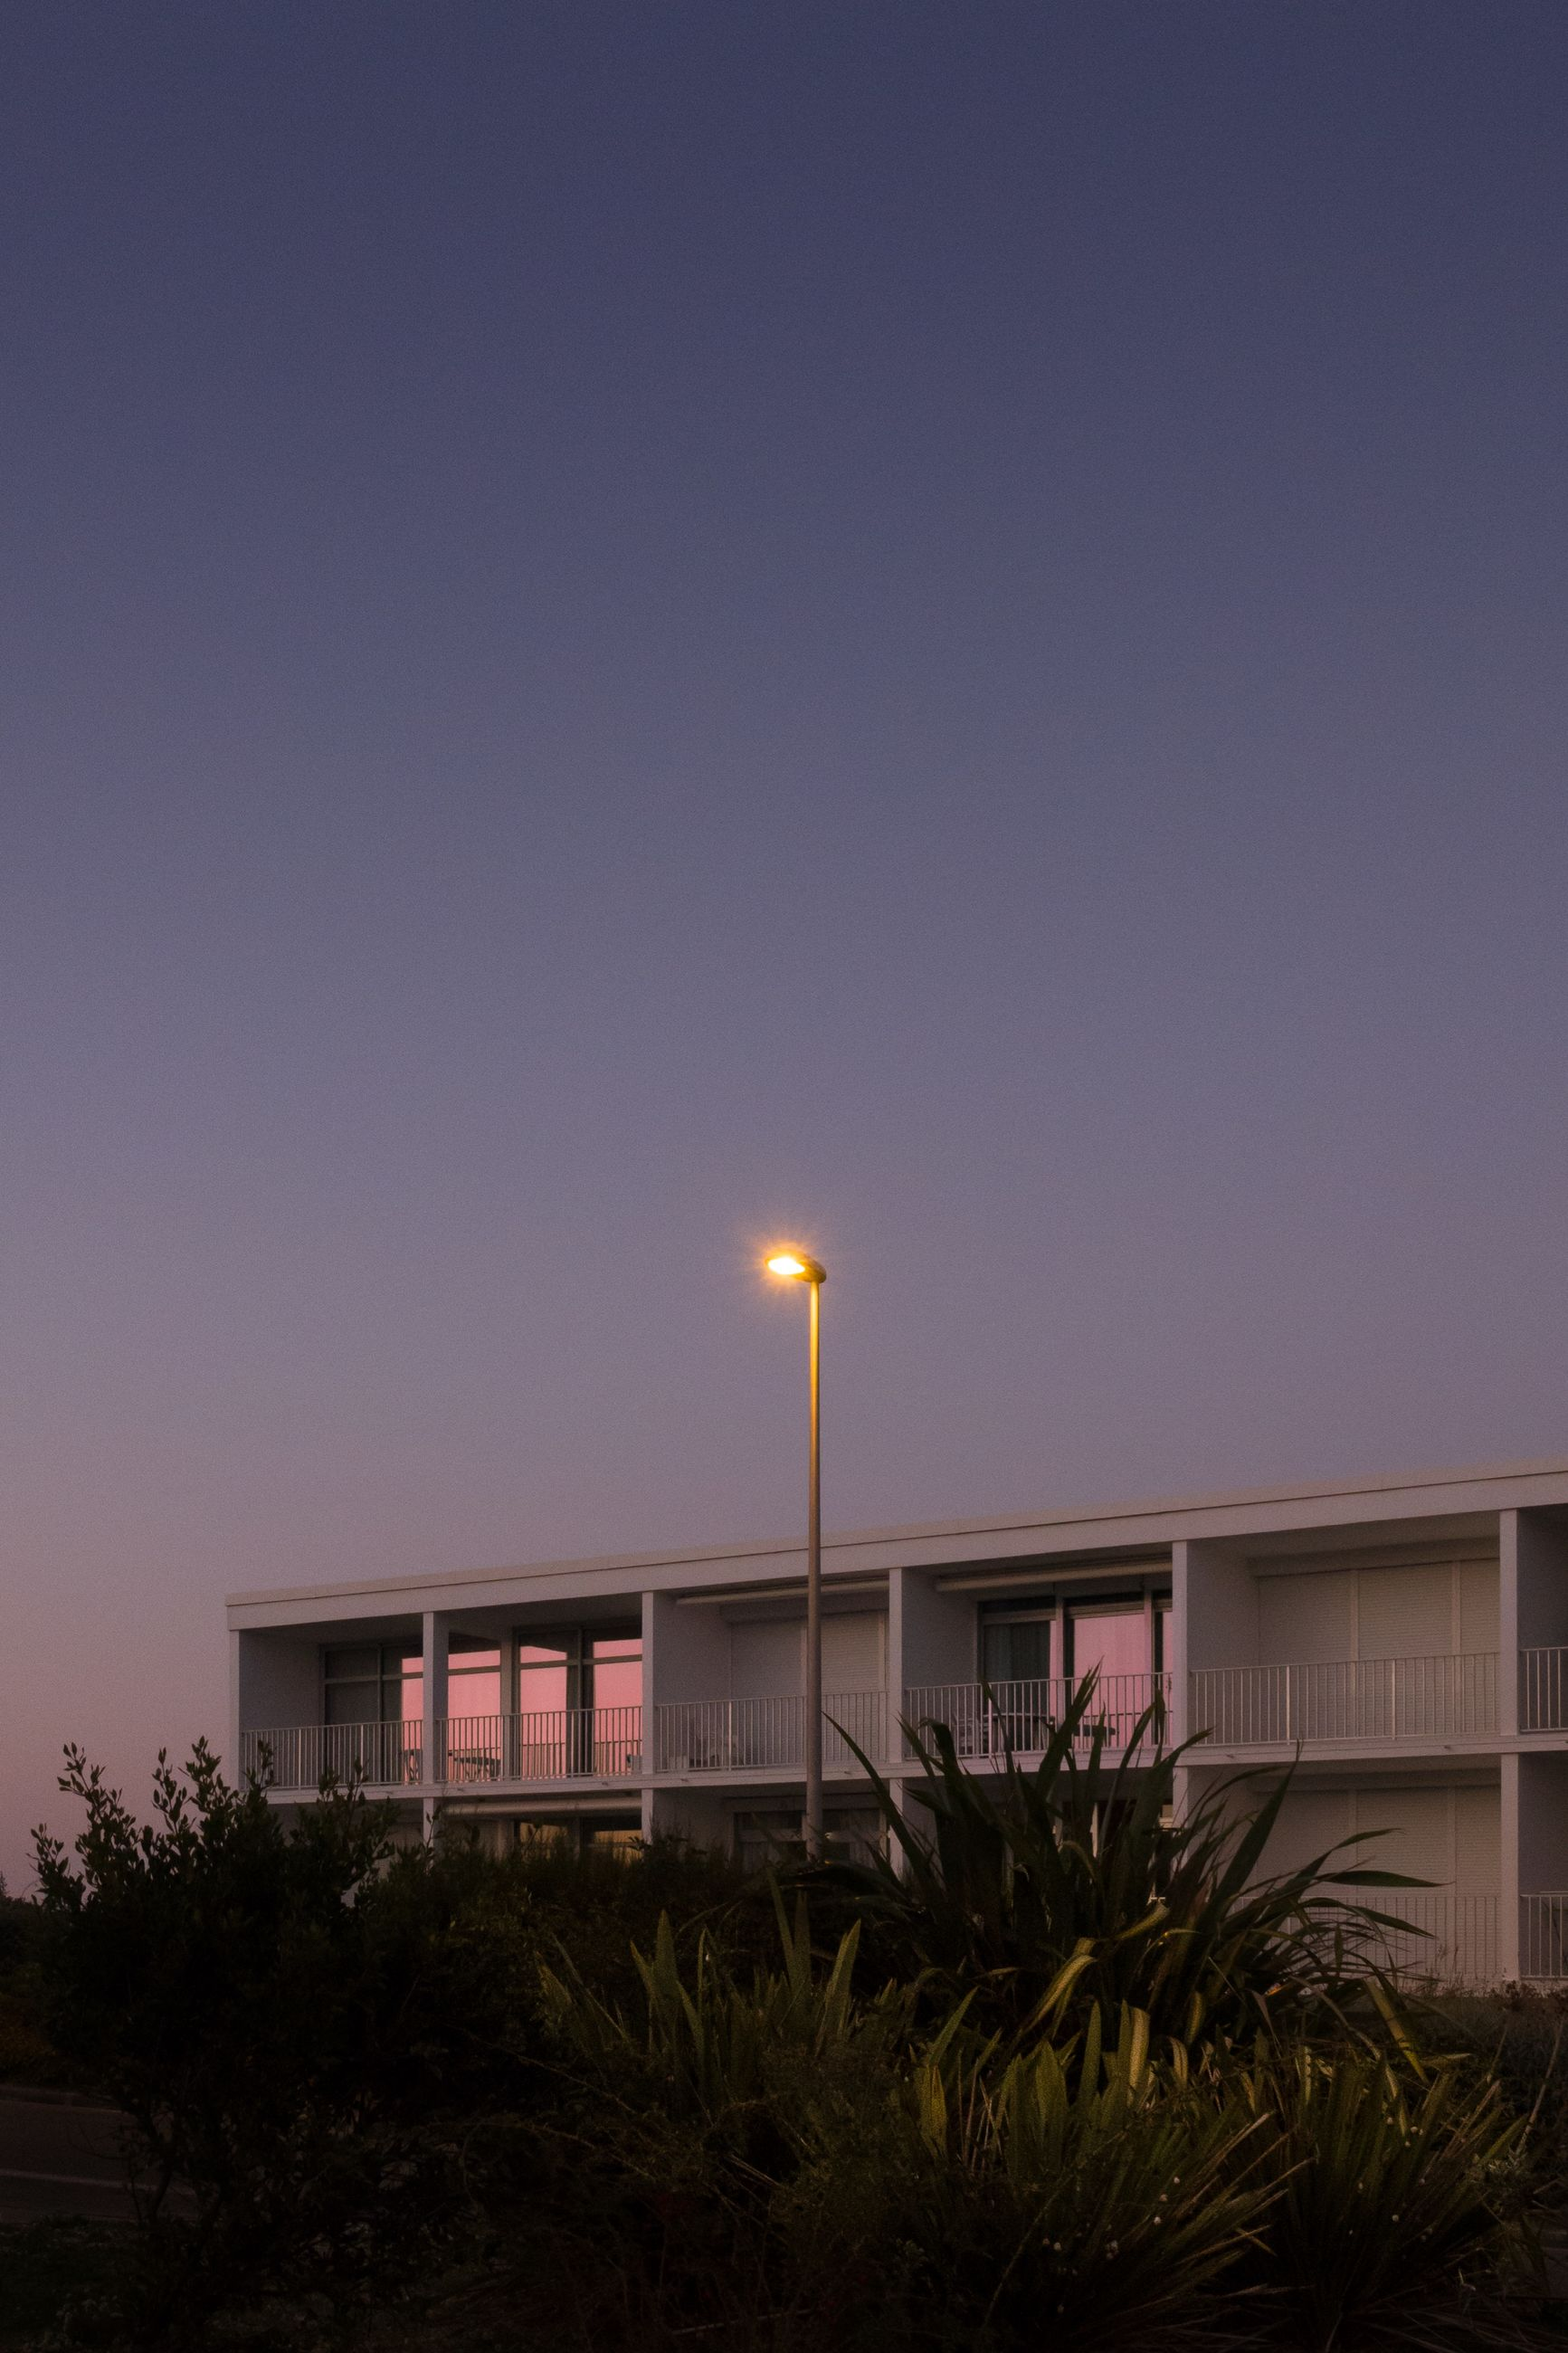 architecture, sky, built structure, building exterior, illuminated, copy space, plant, building, nature, no people, night, lighting equipment, outdoors, street light, clear sky, tree, moon, dusk, house, street